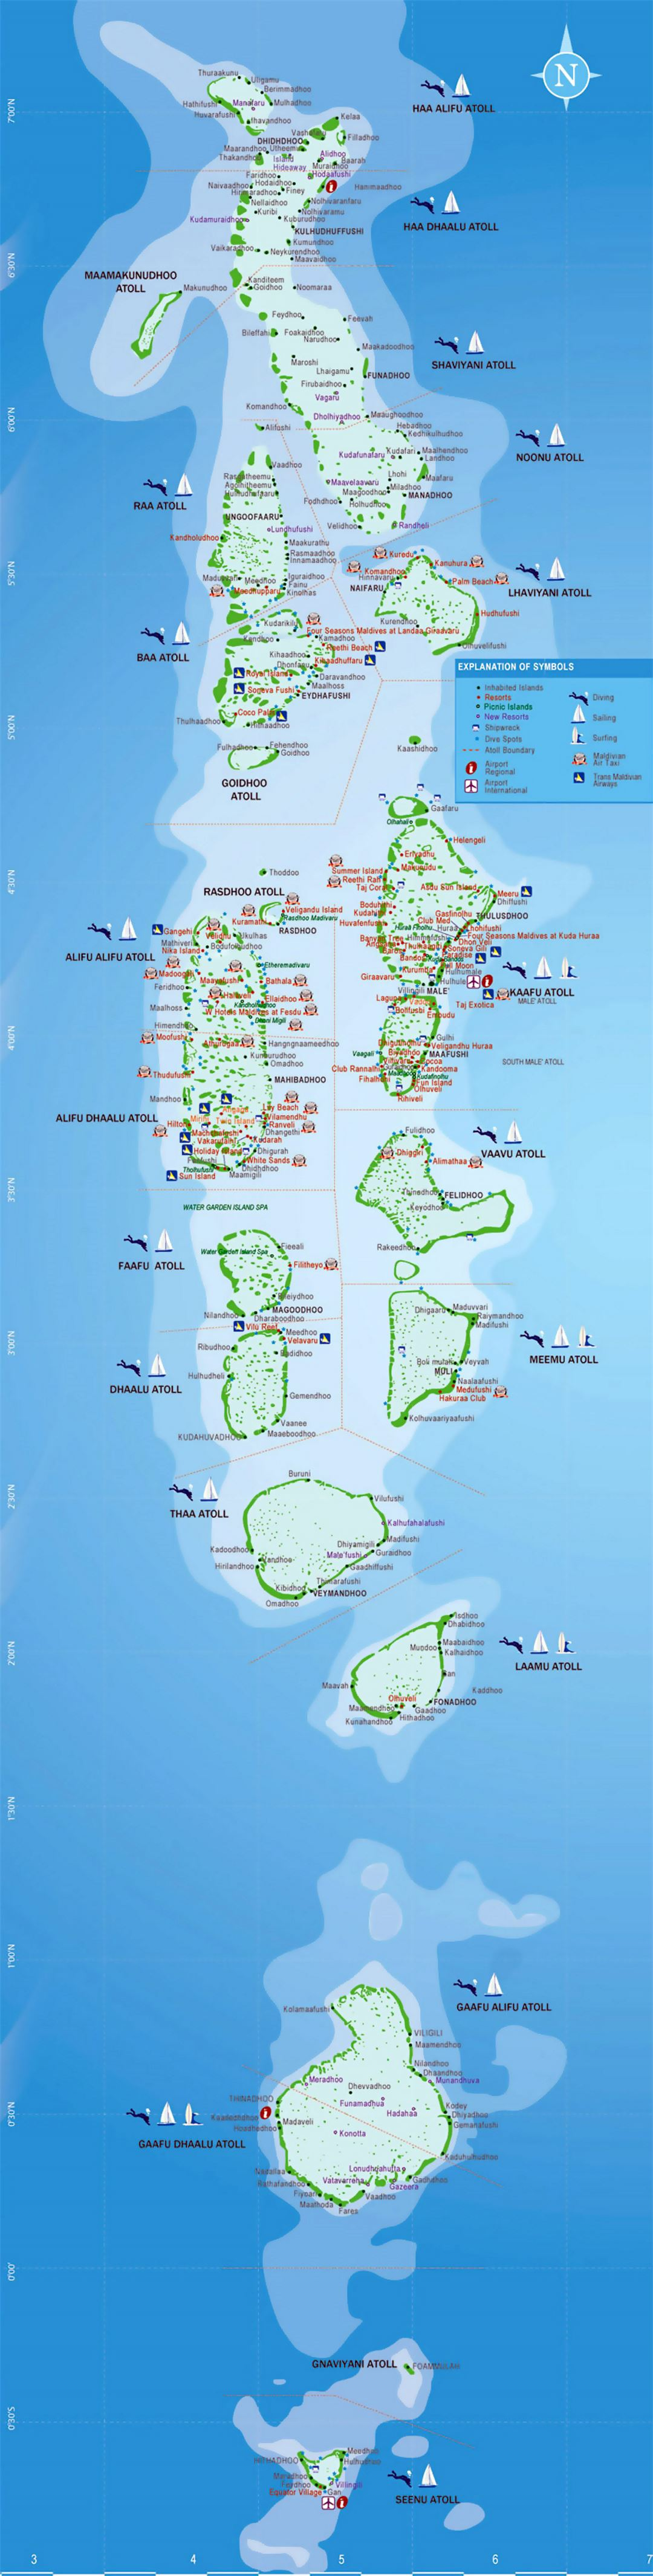 Large map of Maldives with atolls, resorts and activities details